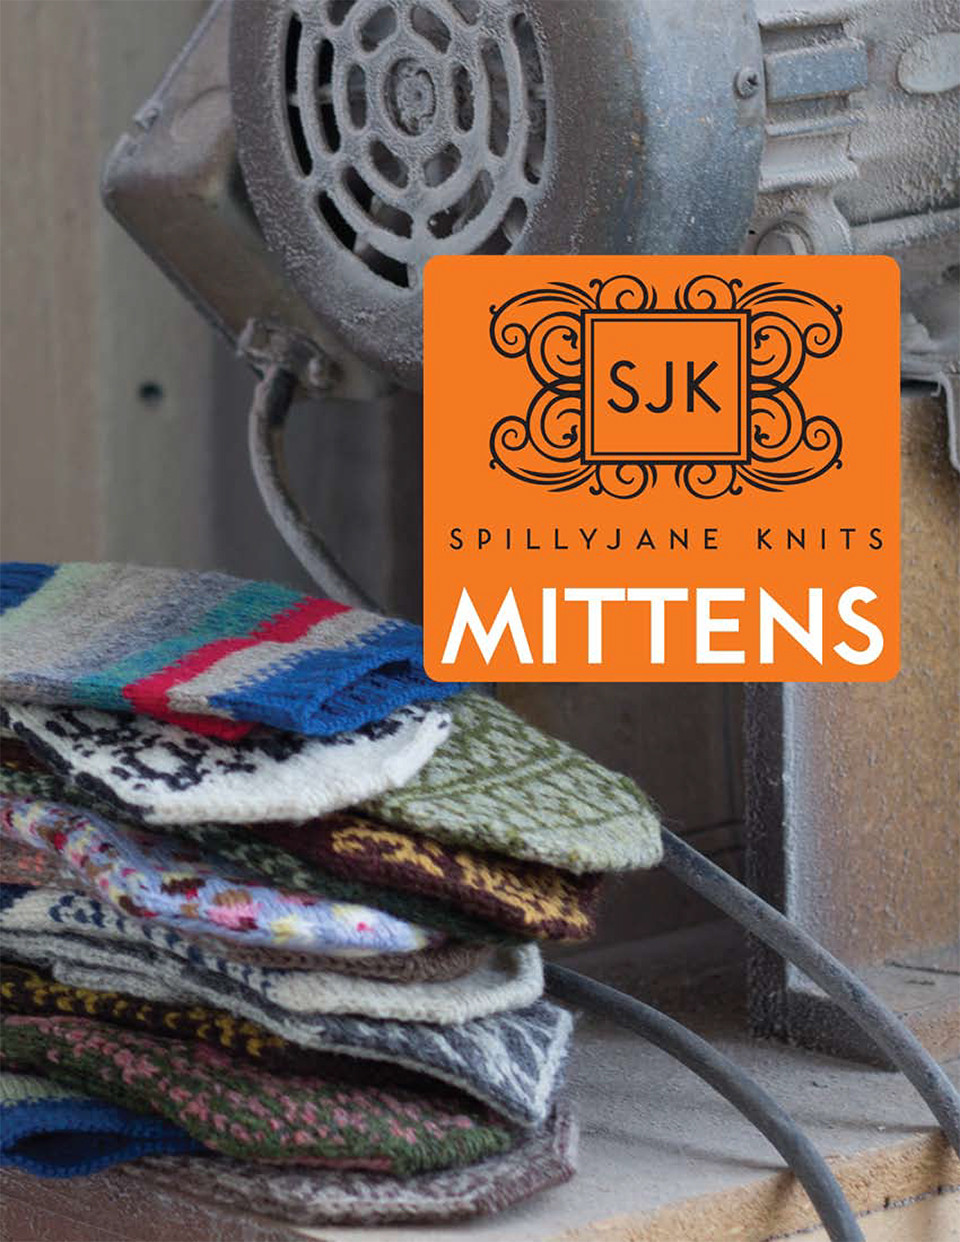 Spilly Jane Knits Mittens!